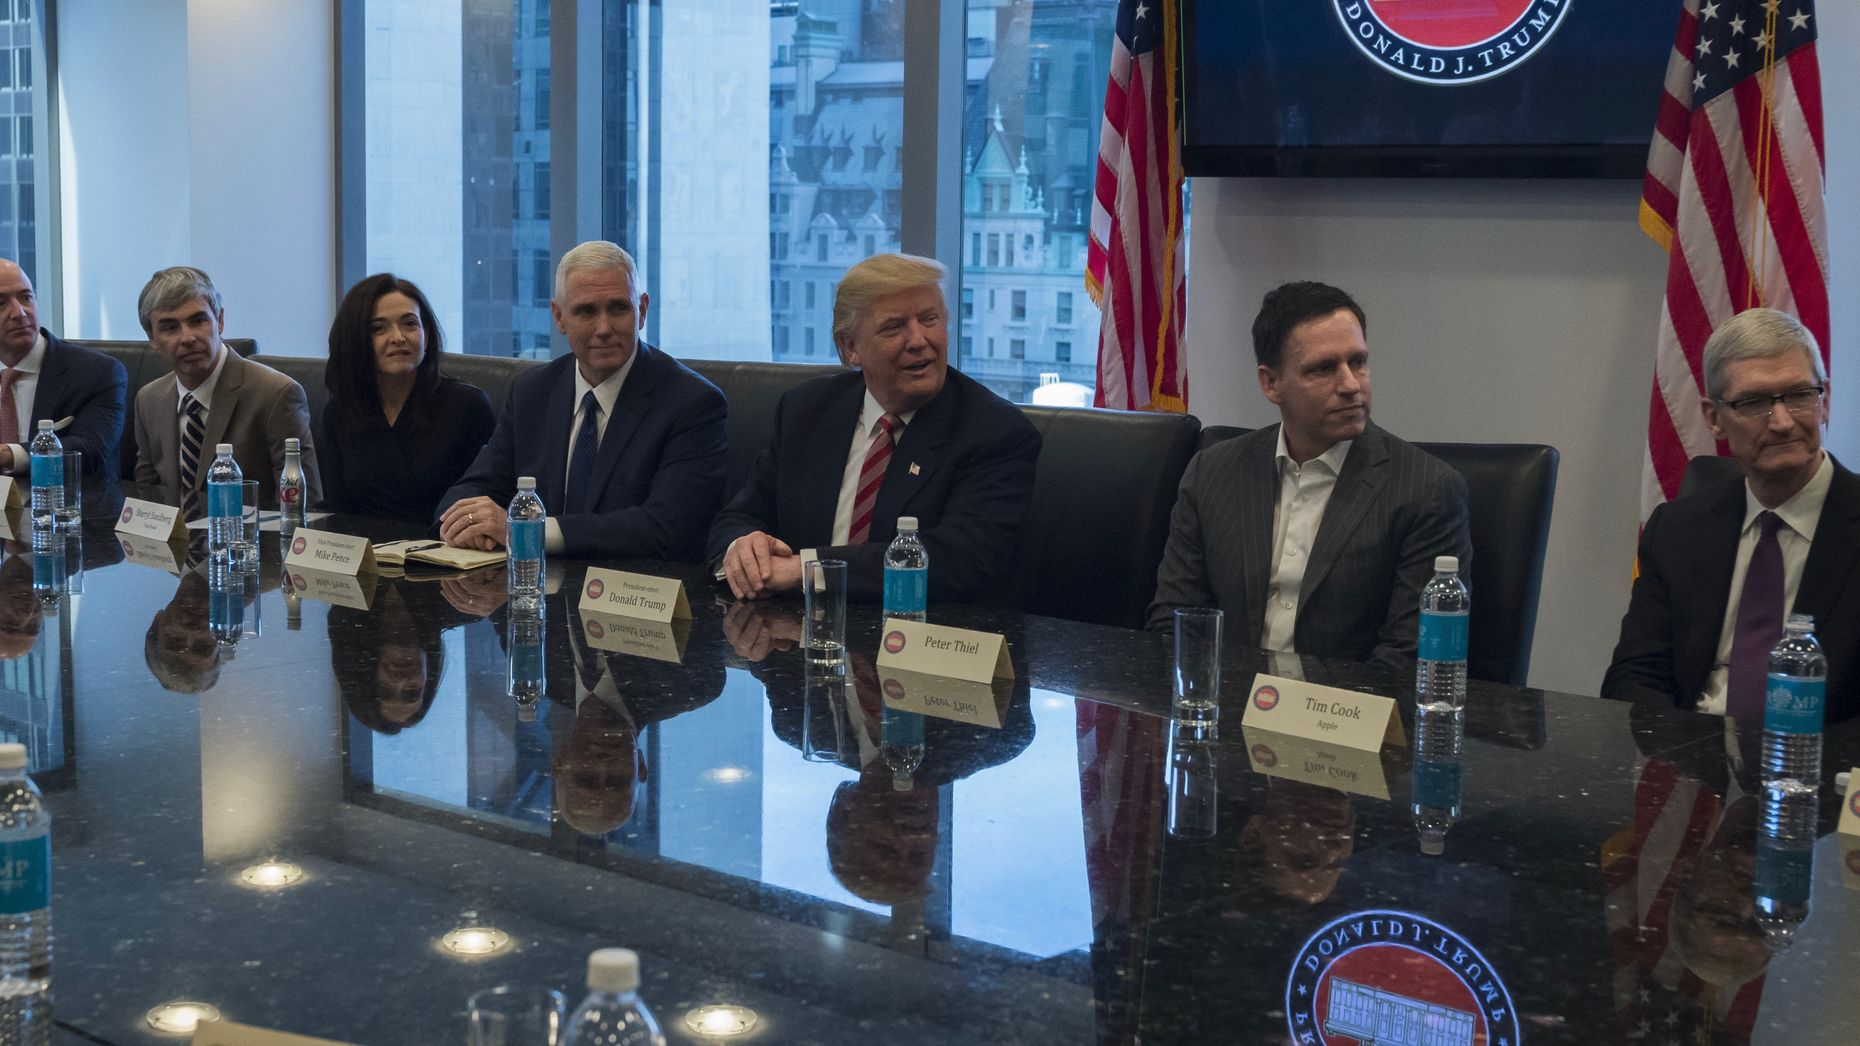 Tech leaders with President Trump. Photo by Bloomberg